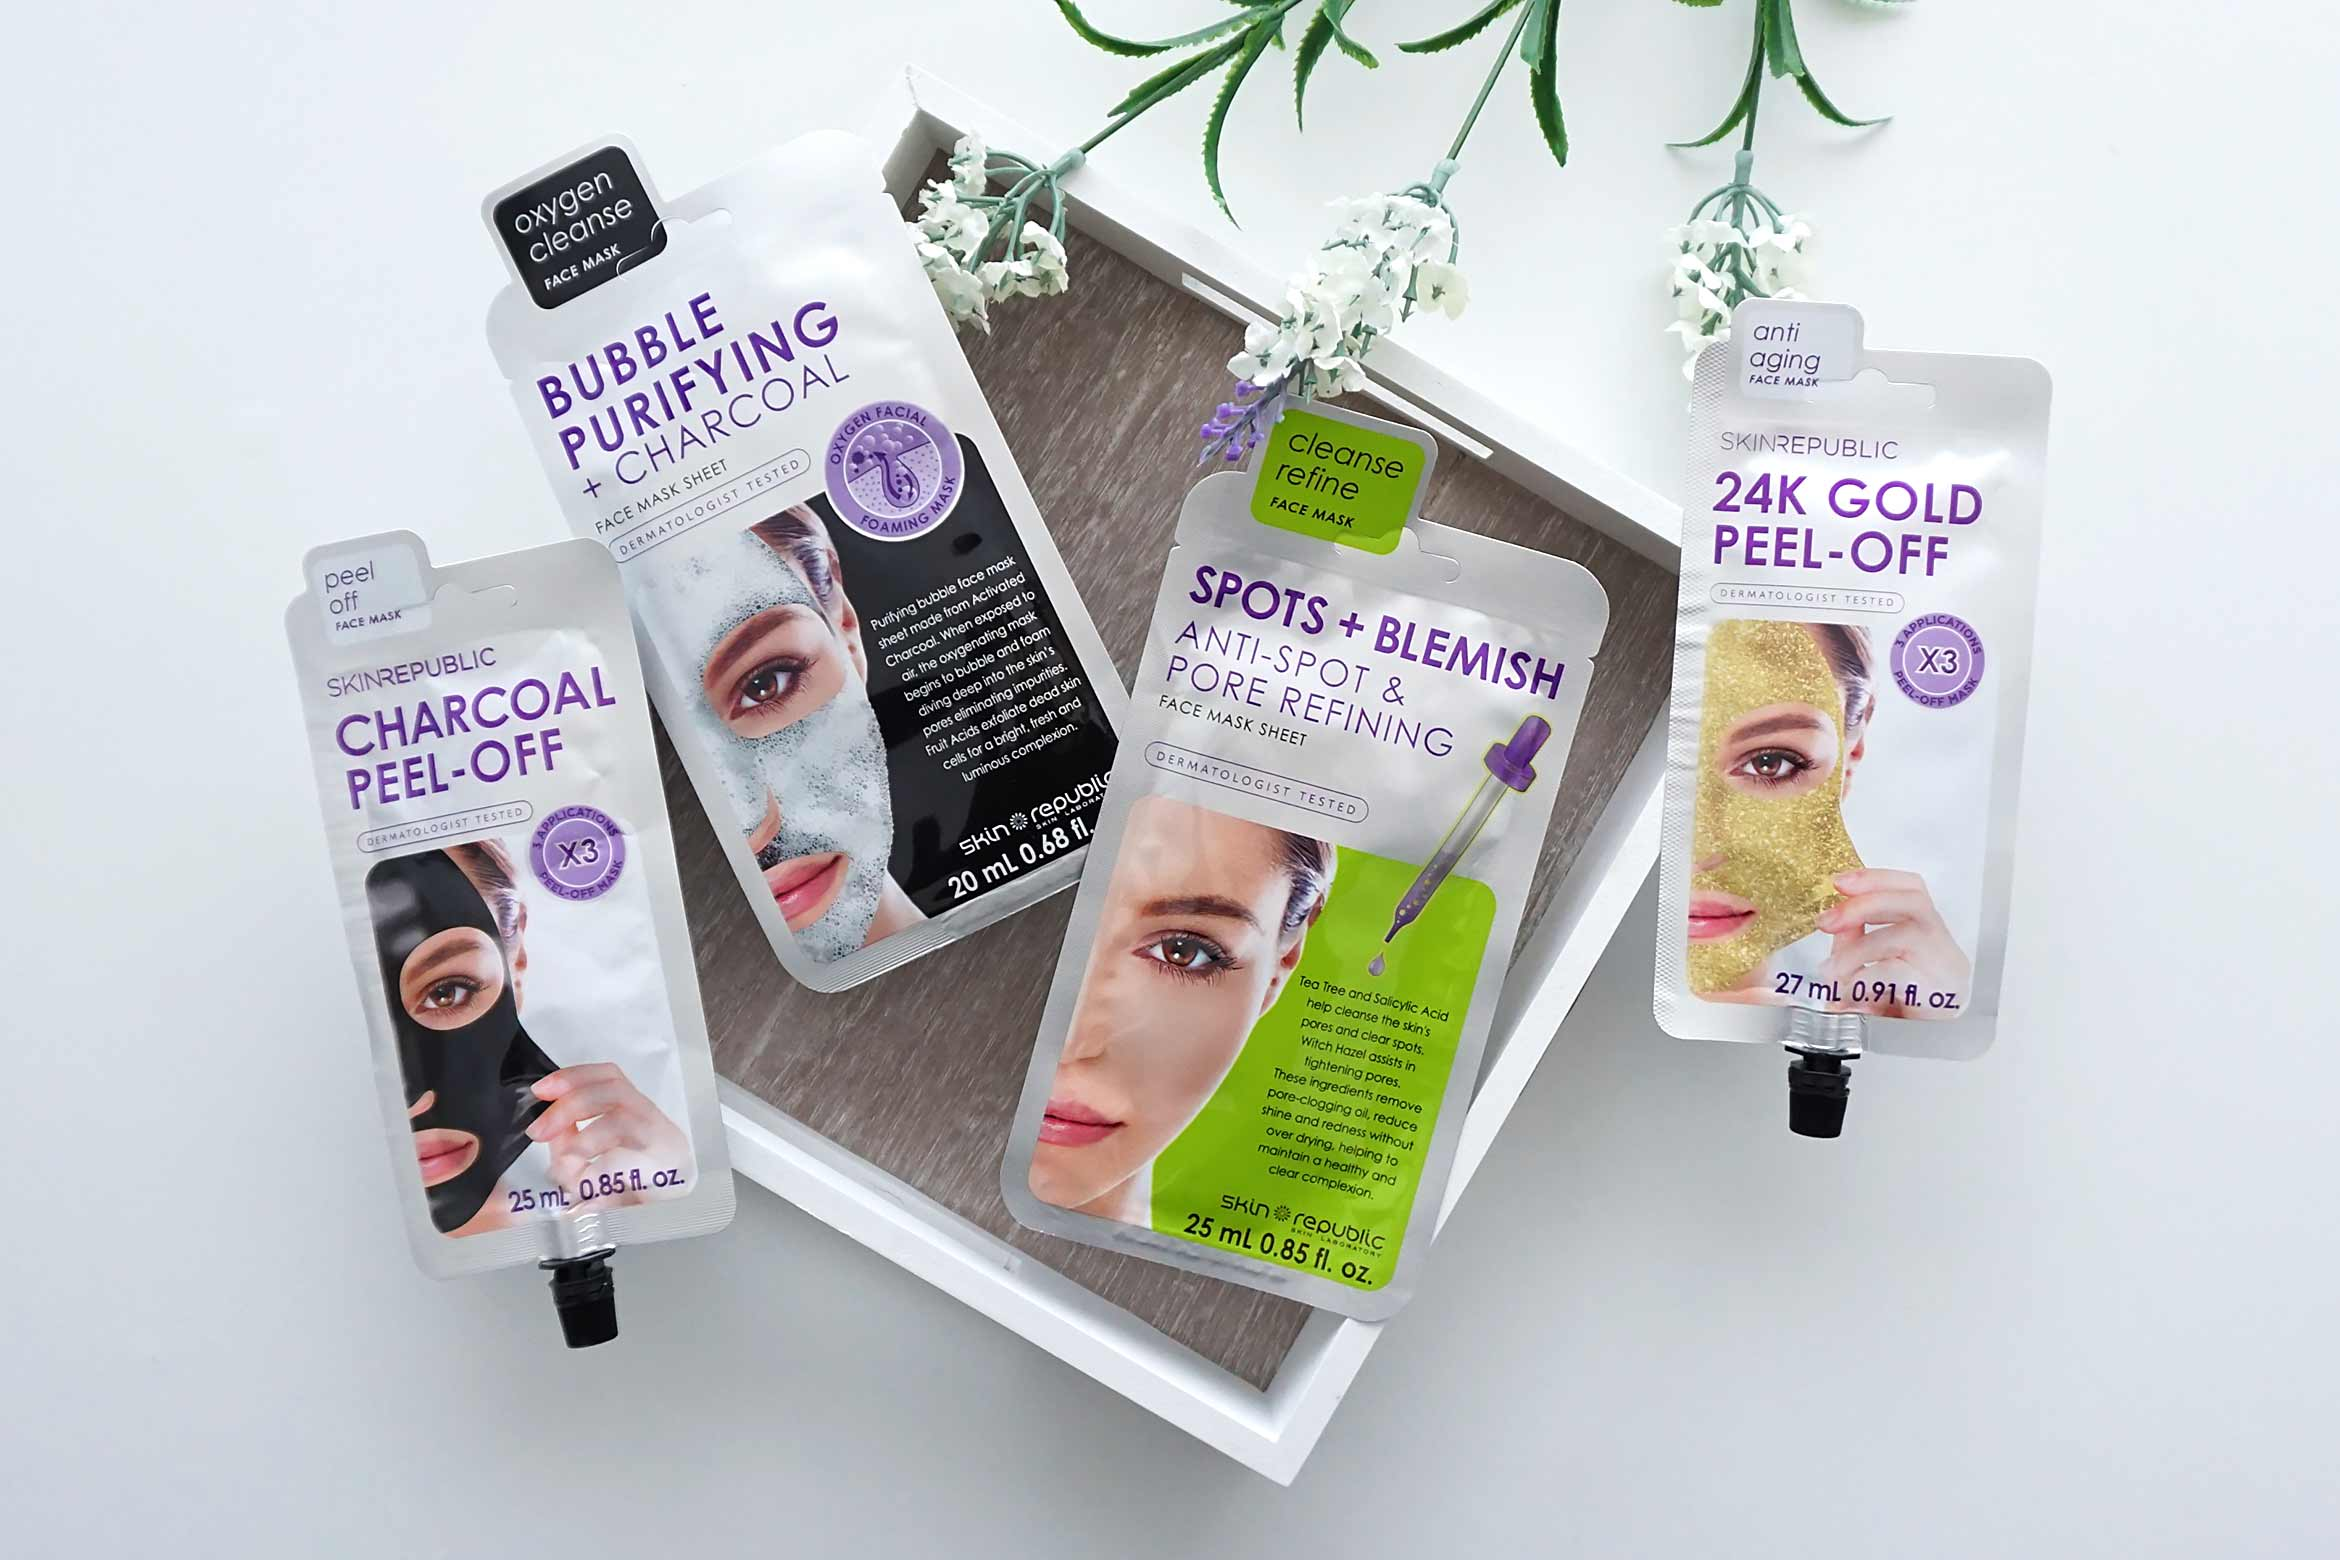 skin-republic-face-mask-review-1